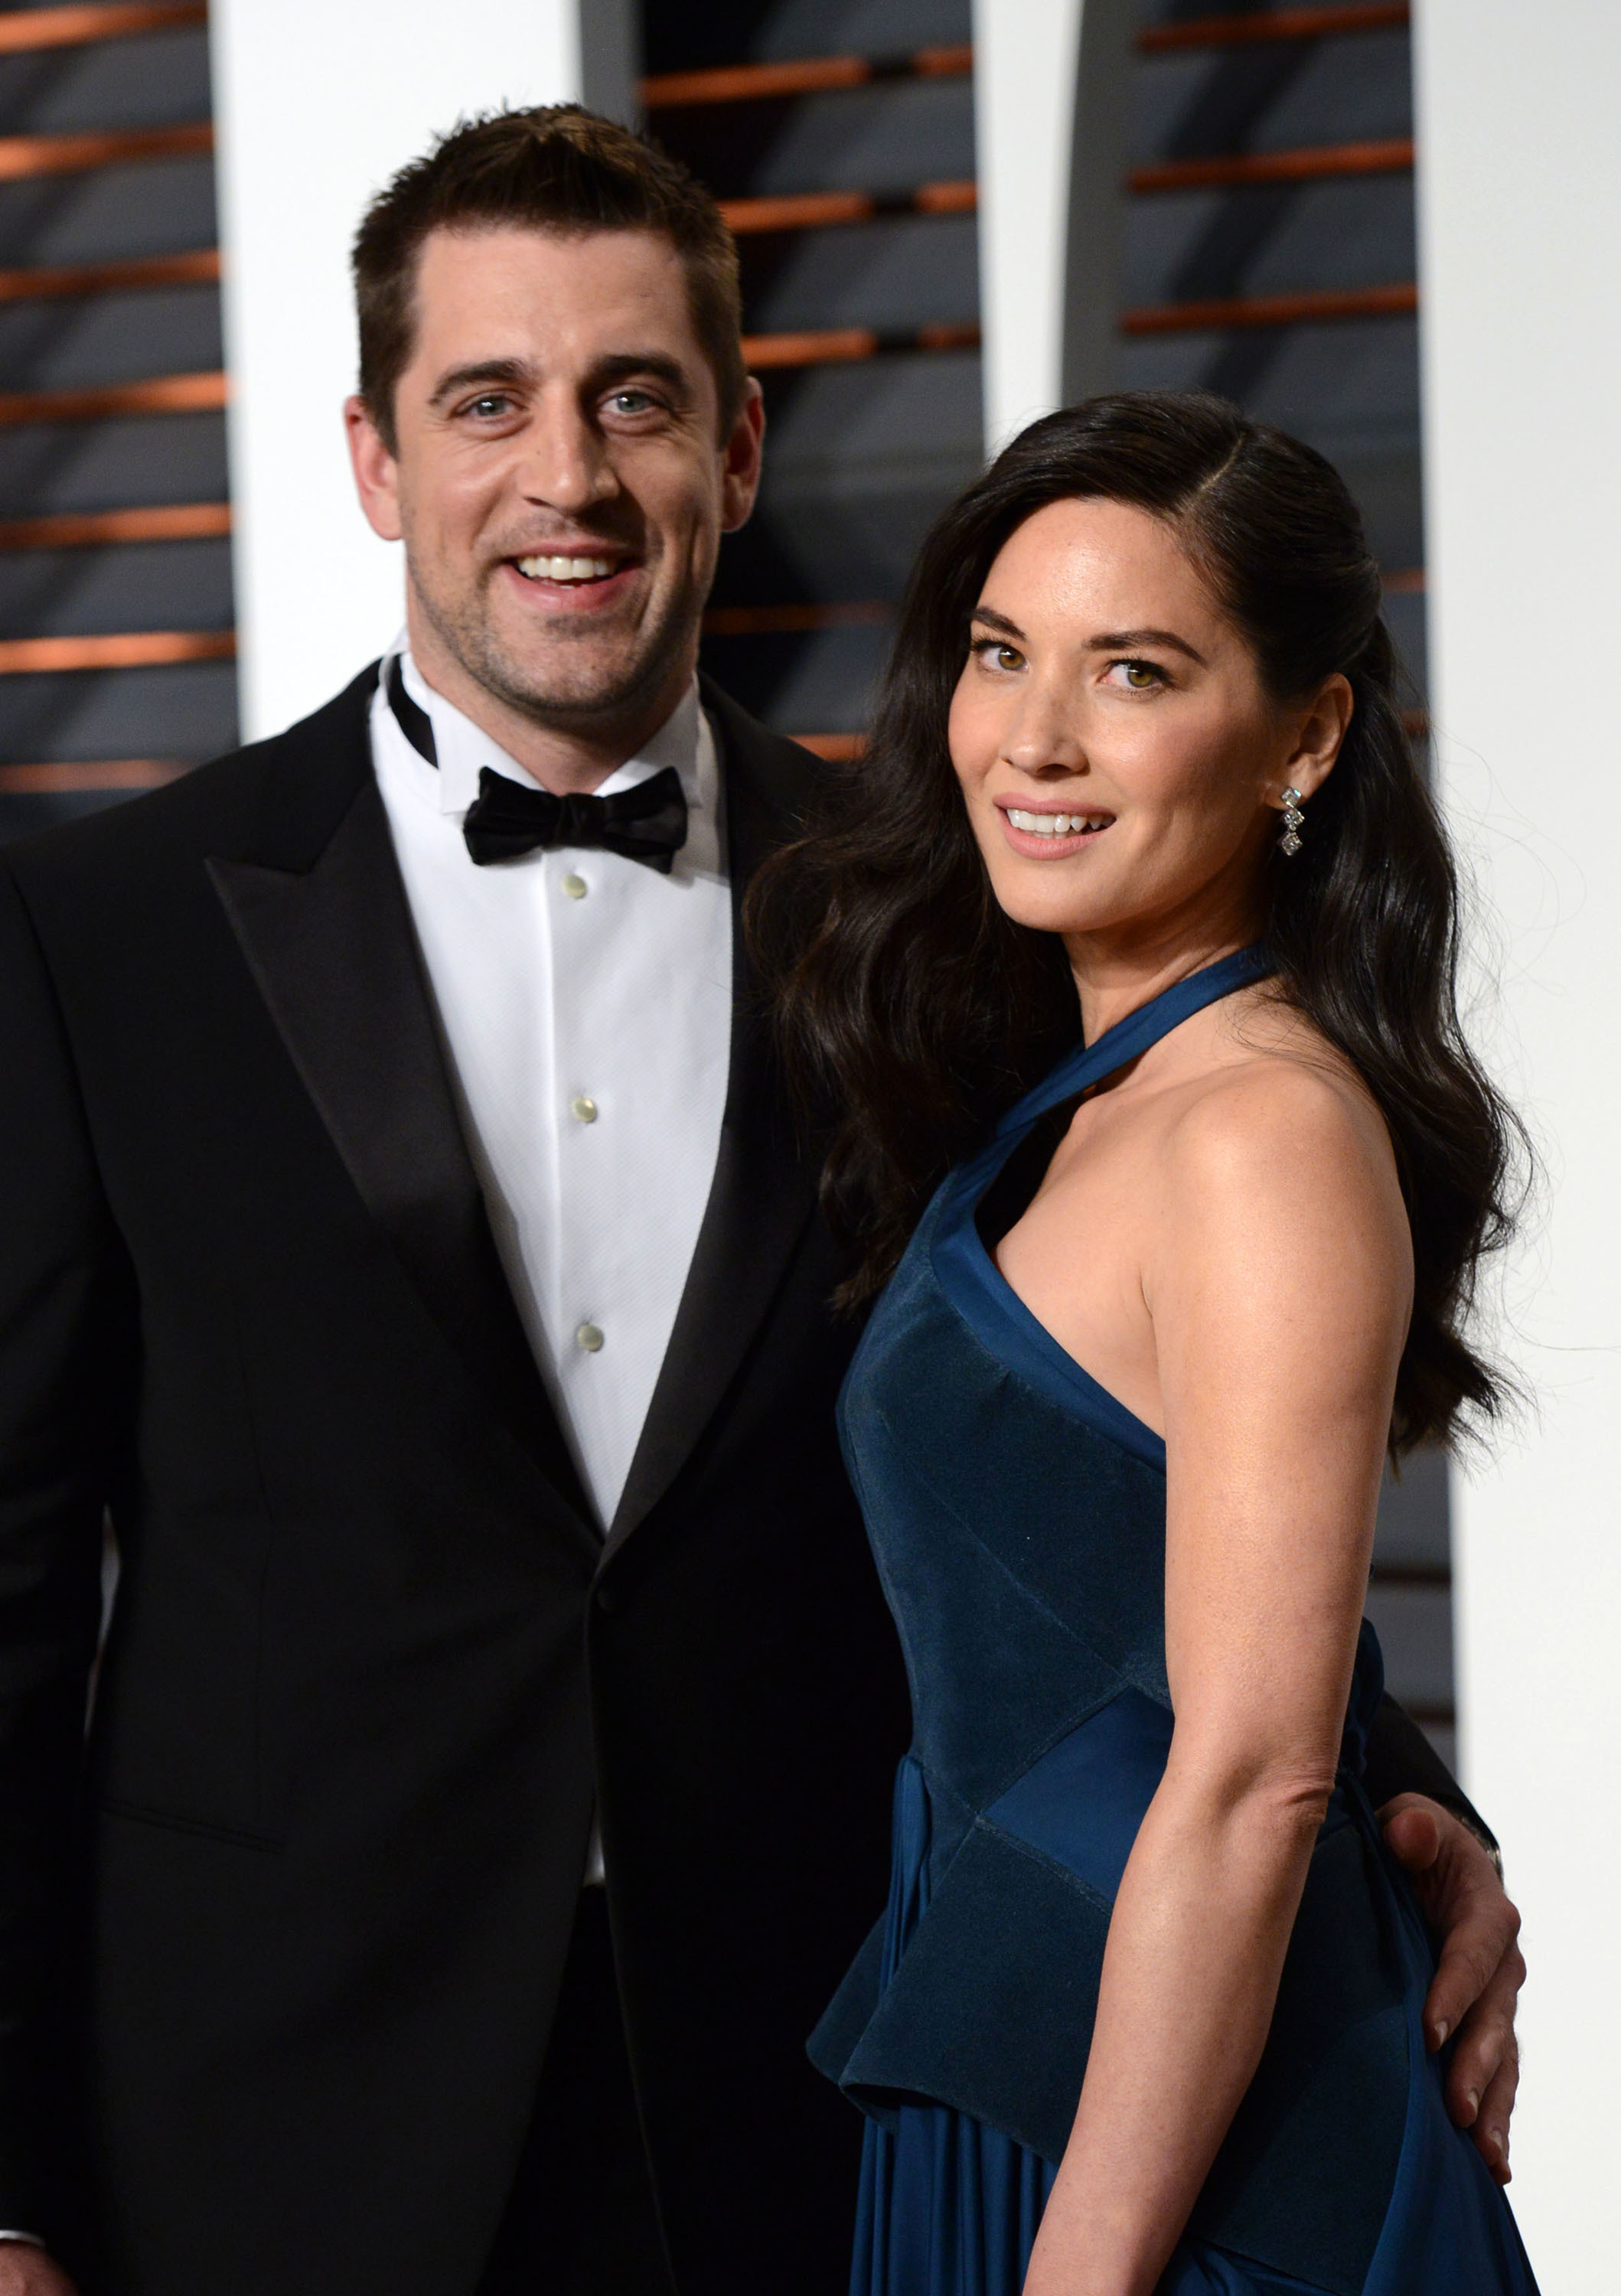 Olivia Munn insists she's not engaged to Aaron Rodgers